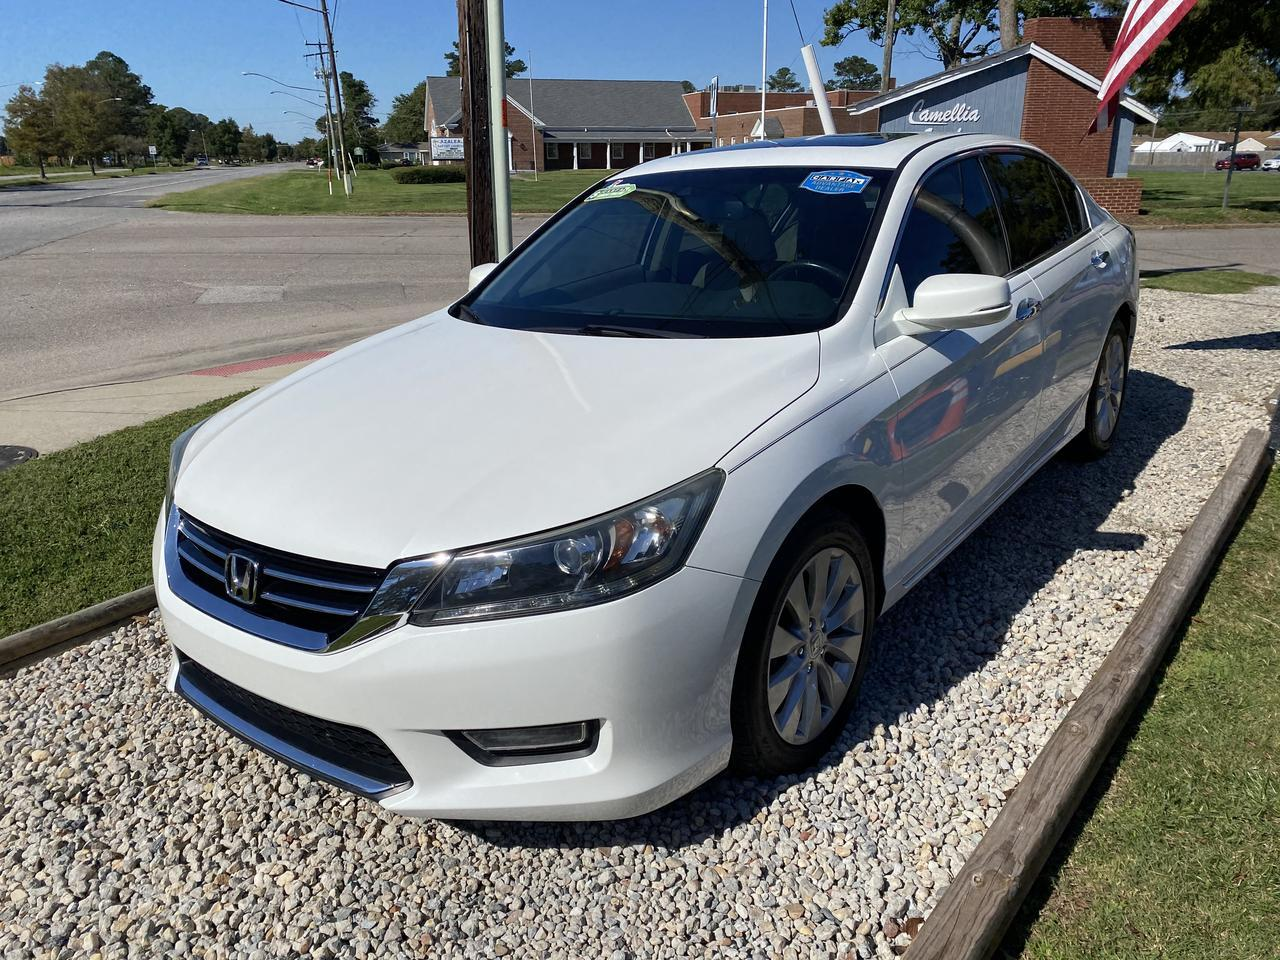 2013 HONDA ACCORD EX-L, WARRANTY, LEATHER, BACKUP CAM, PARKING SENSORS, BLUETOOTH, SUNROOF, 1 OWNER, CLEAN CARFAX! Norfolk VA